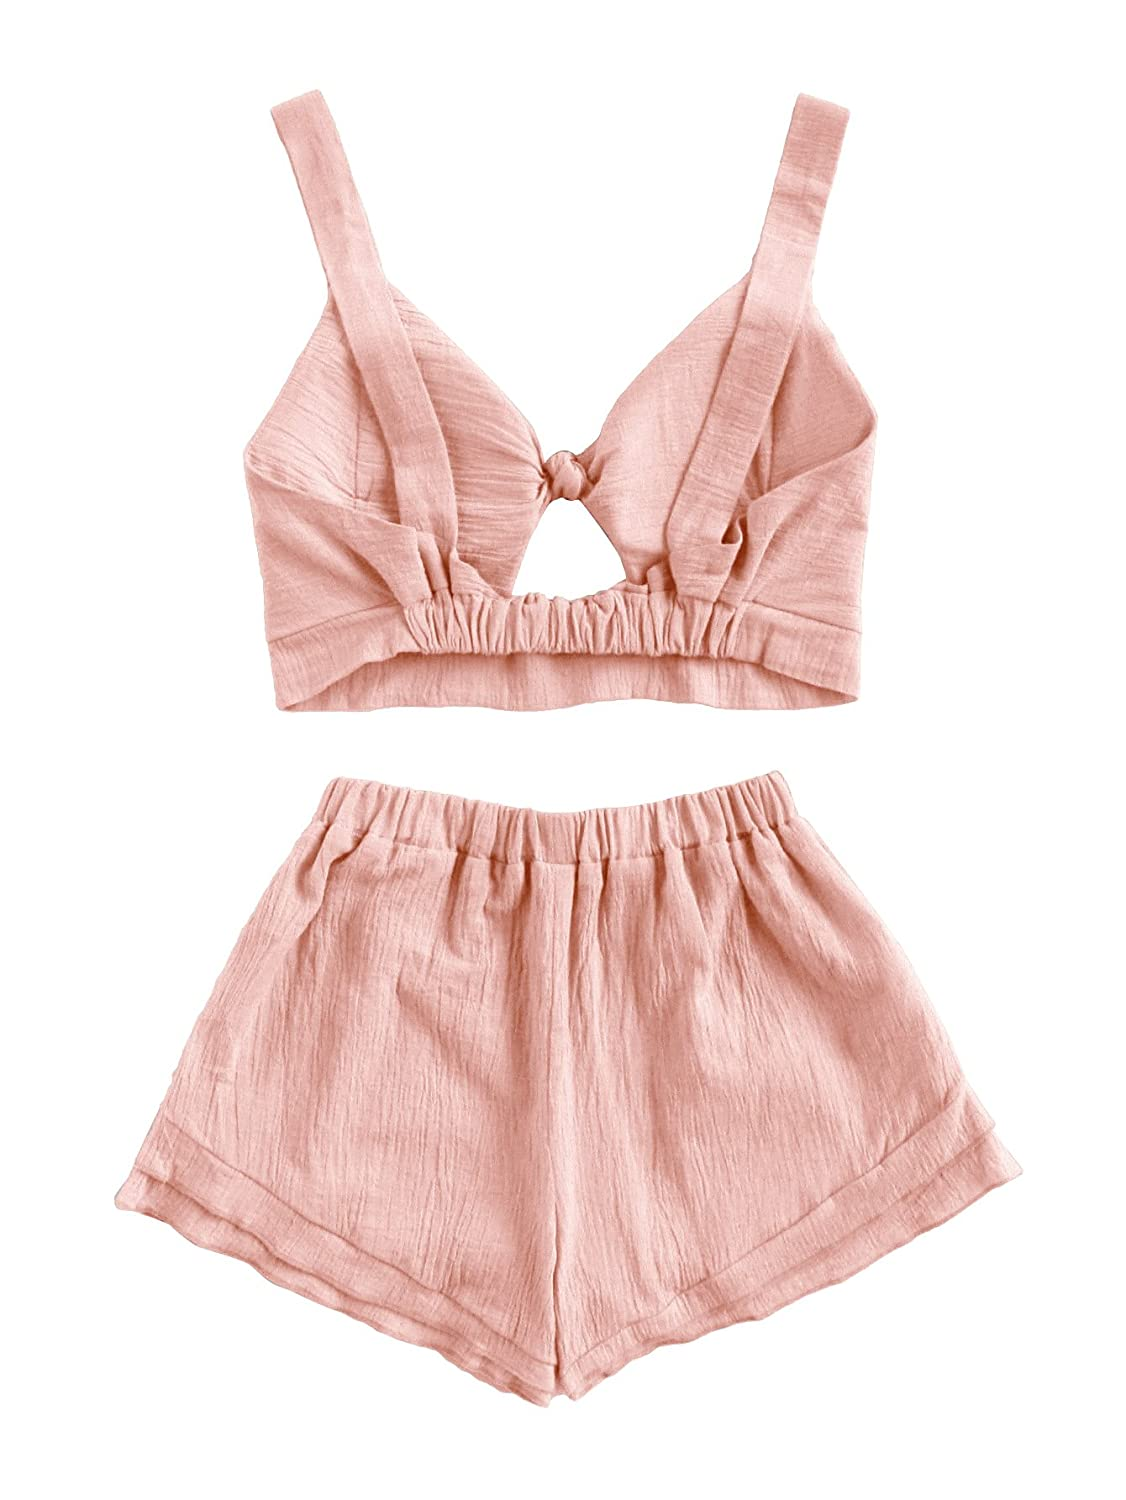 b660f50739 Amazon.com: SheIn Women's V Neck Knot Front Crop Top 2 Pieces Outfits with  Shorts: Clothing